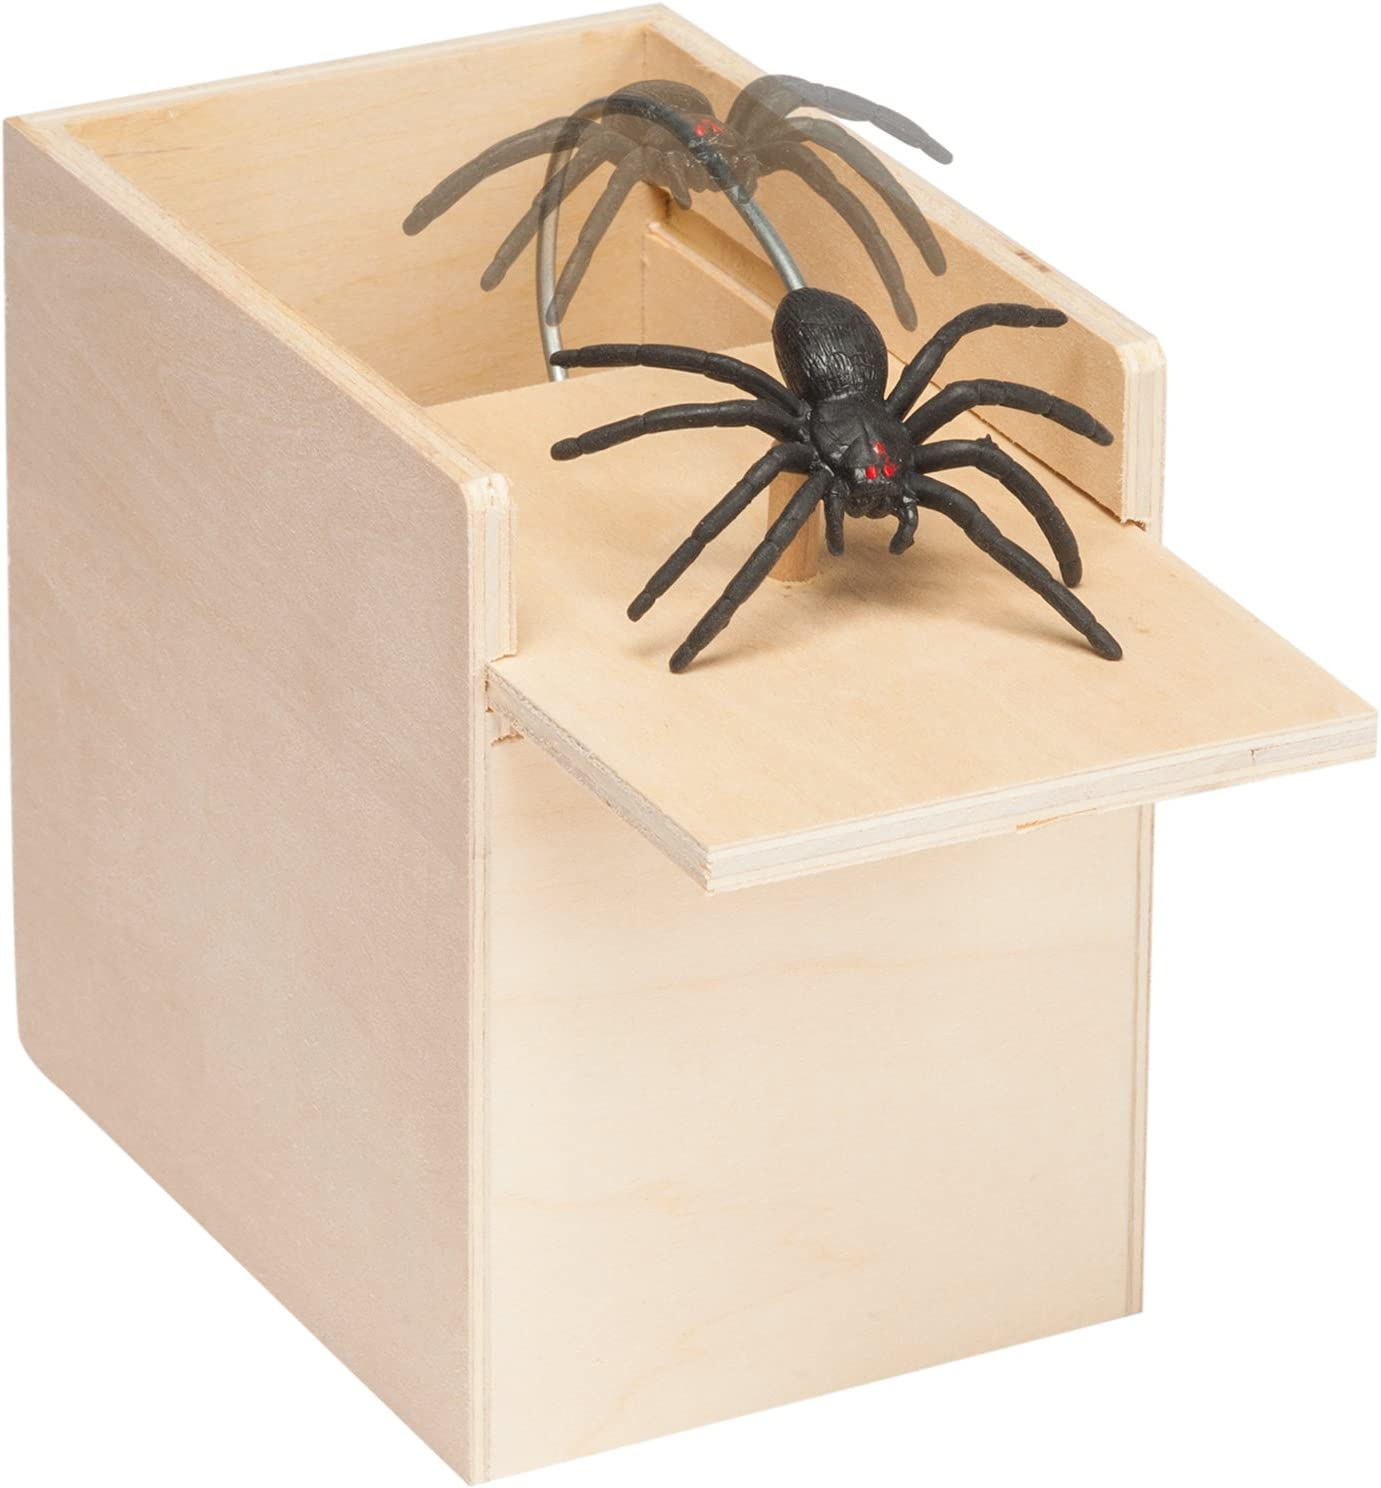 The Paragon Spider Surprise - Hucha con Forma de araña: Amazon.es: Juguetes y juegos